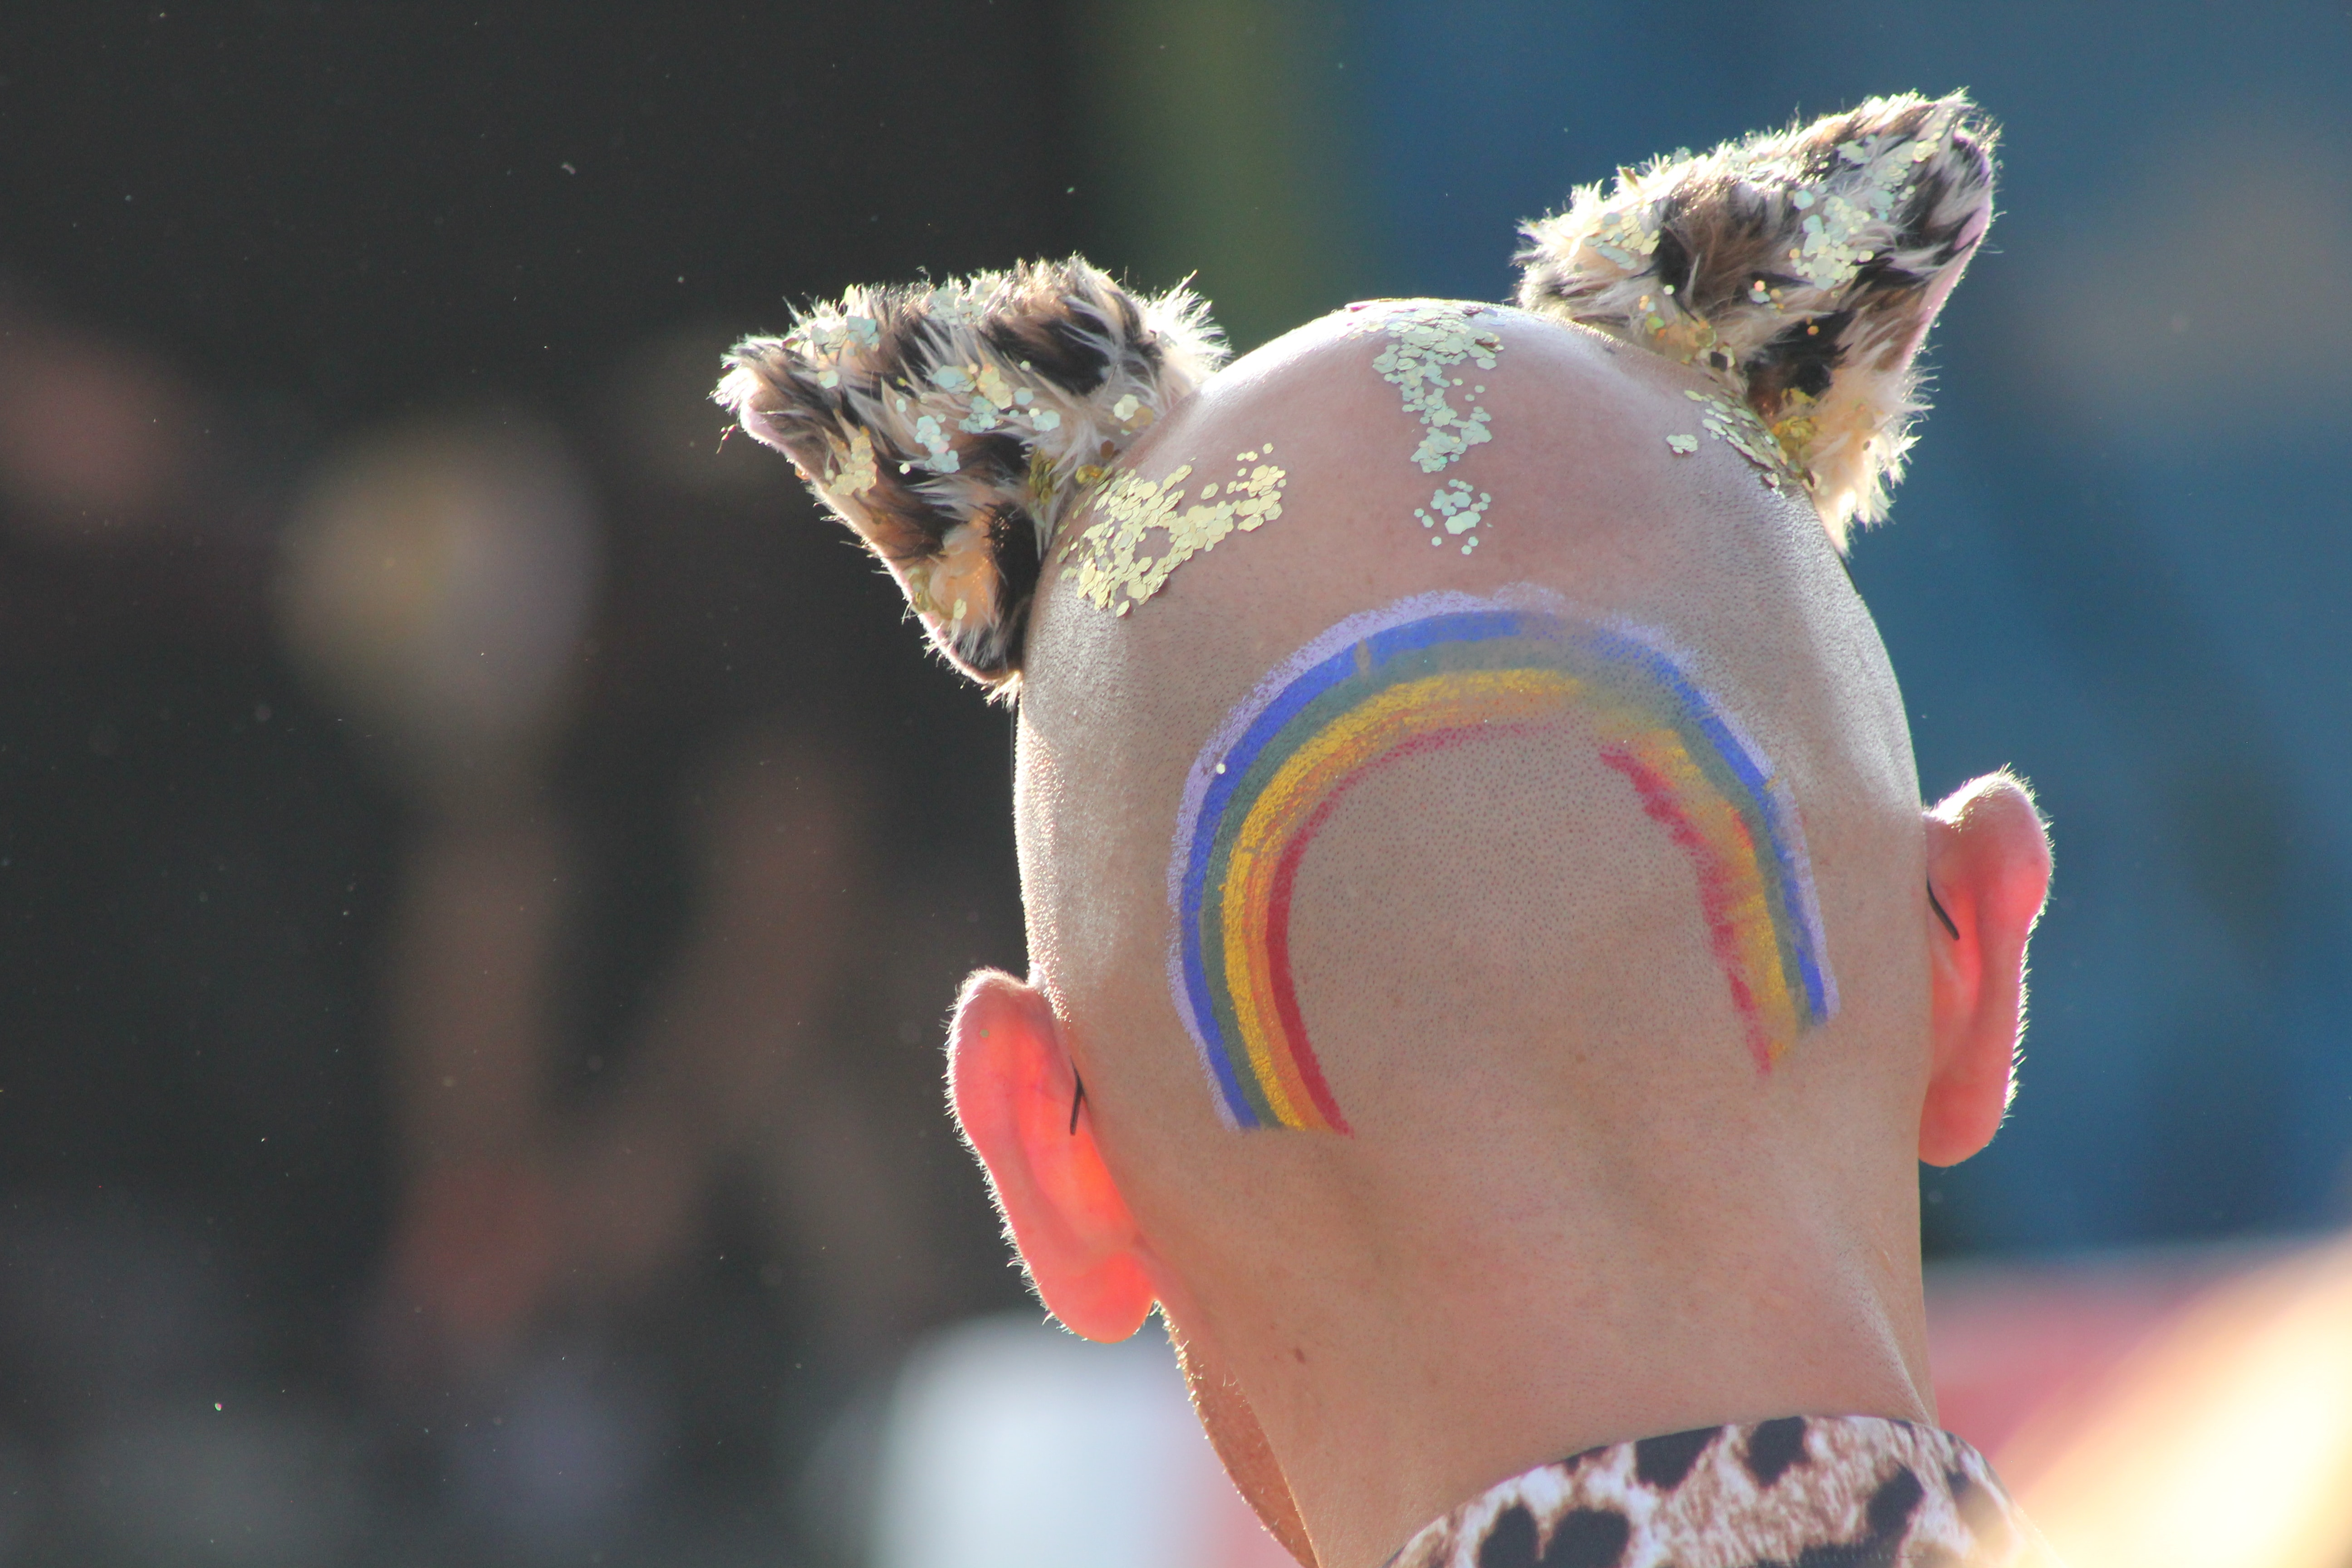 back of someone's head with a rainbow painted on it and who is also wearing cat ears